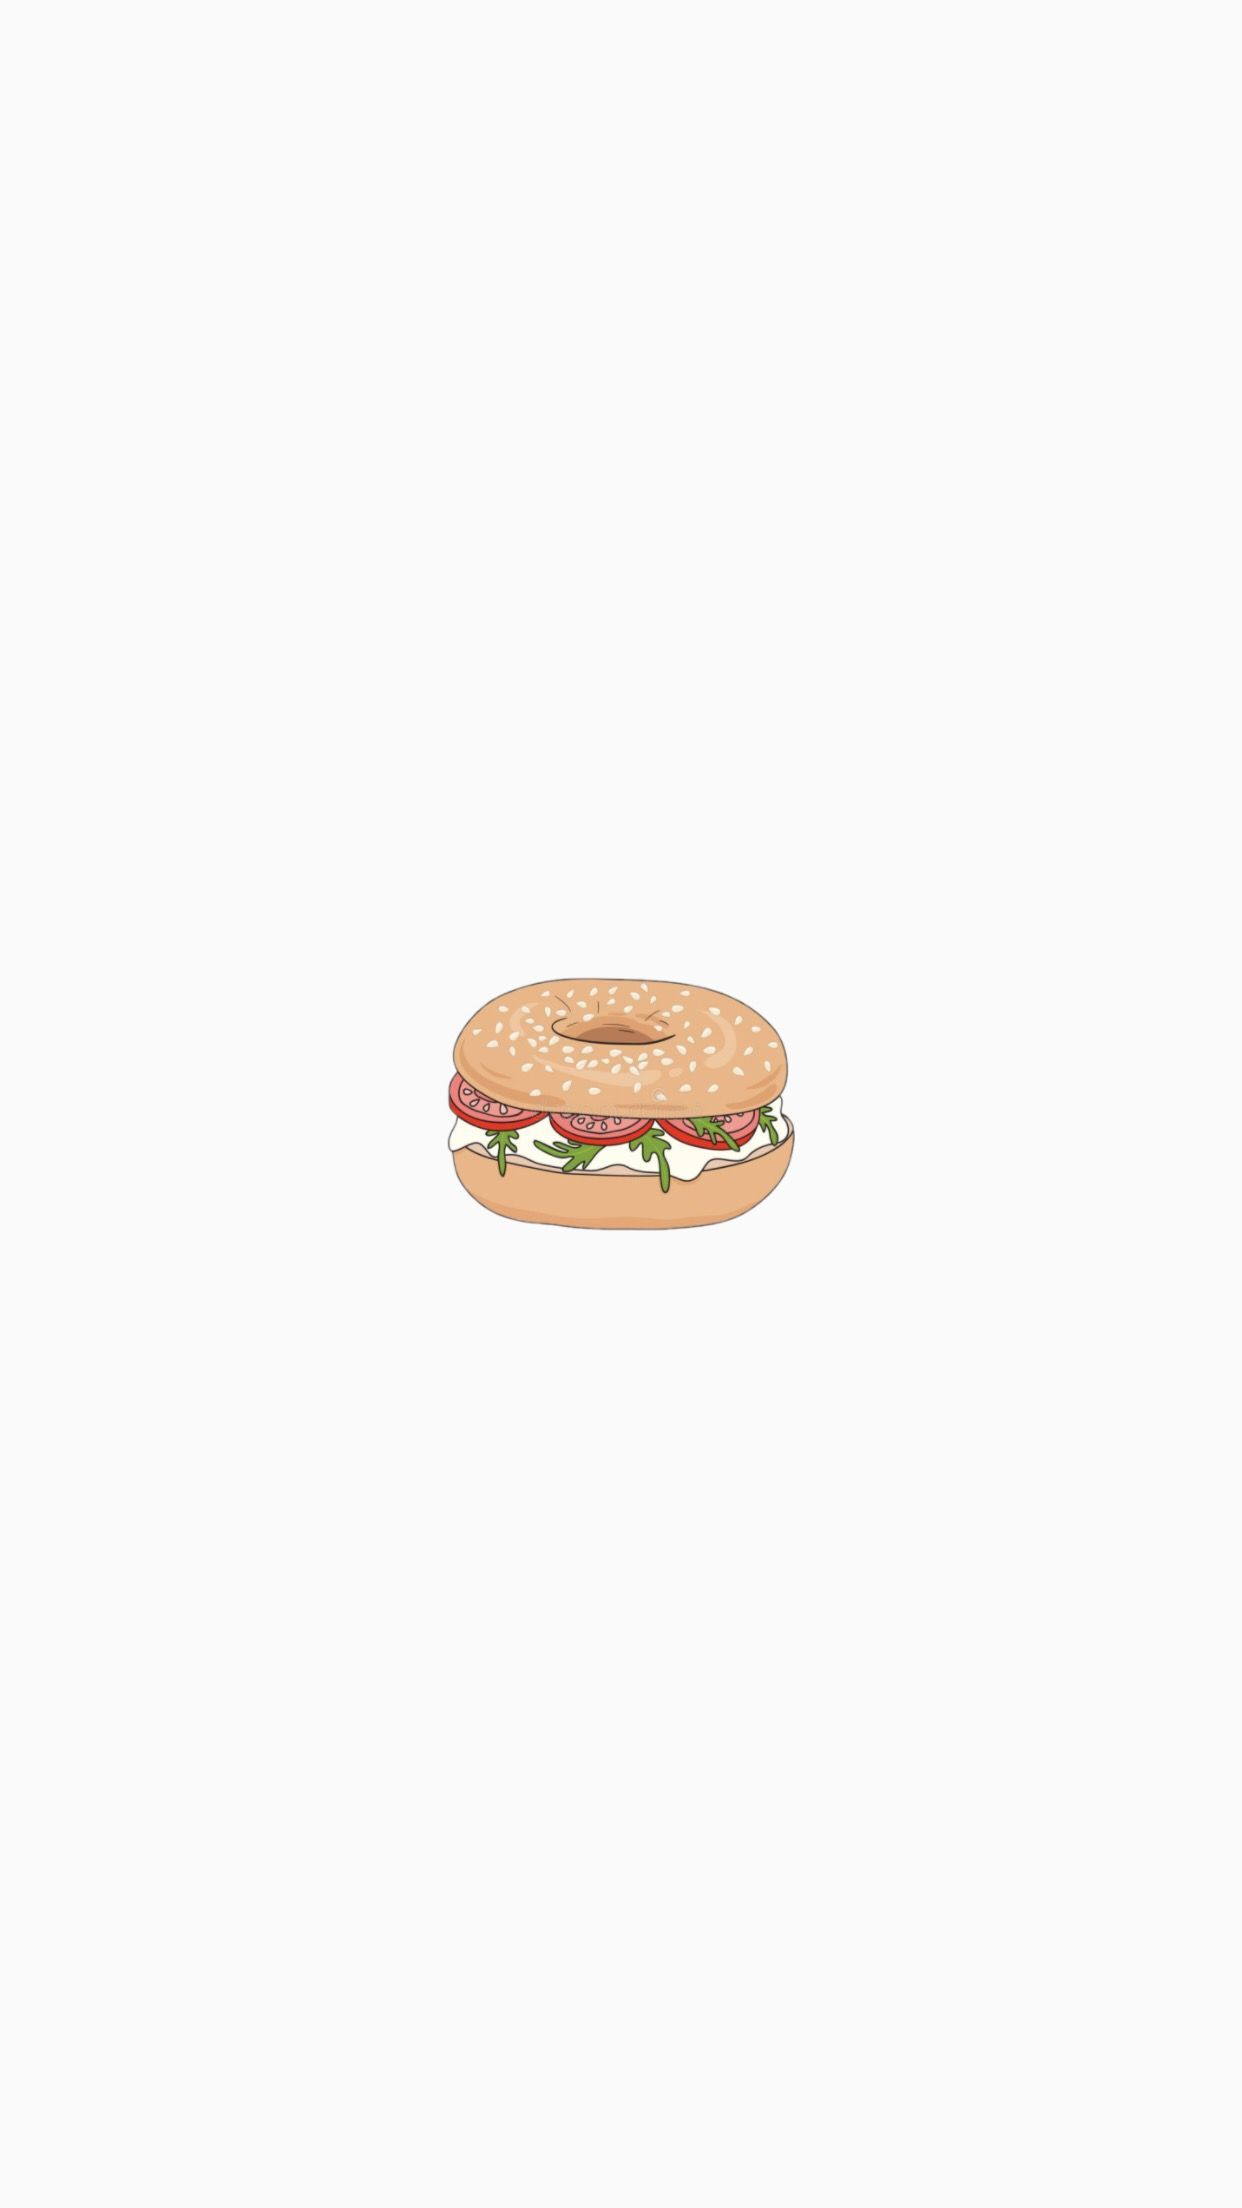 Food Aesthetic Wallpapers Cute